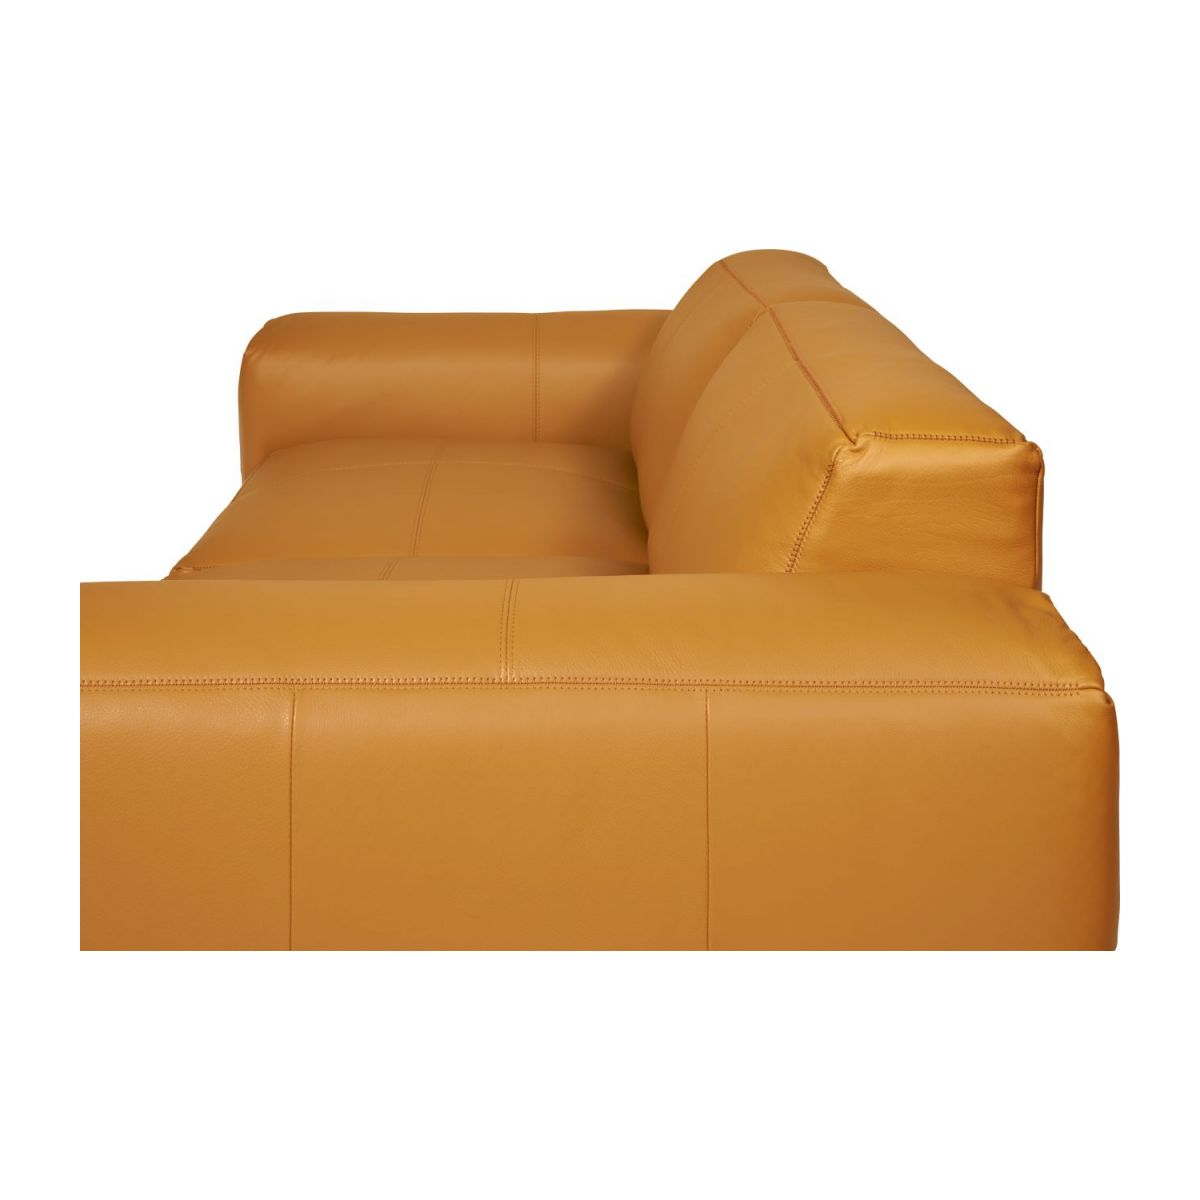 2 seater sofa in Savoy semi-aniline leather, cognac n°11